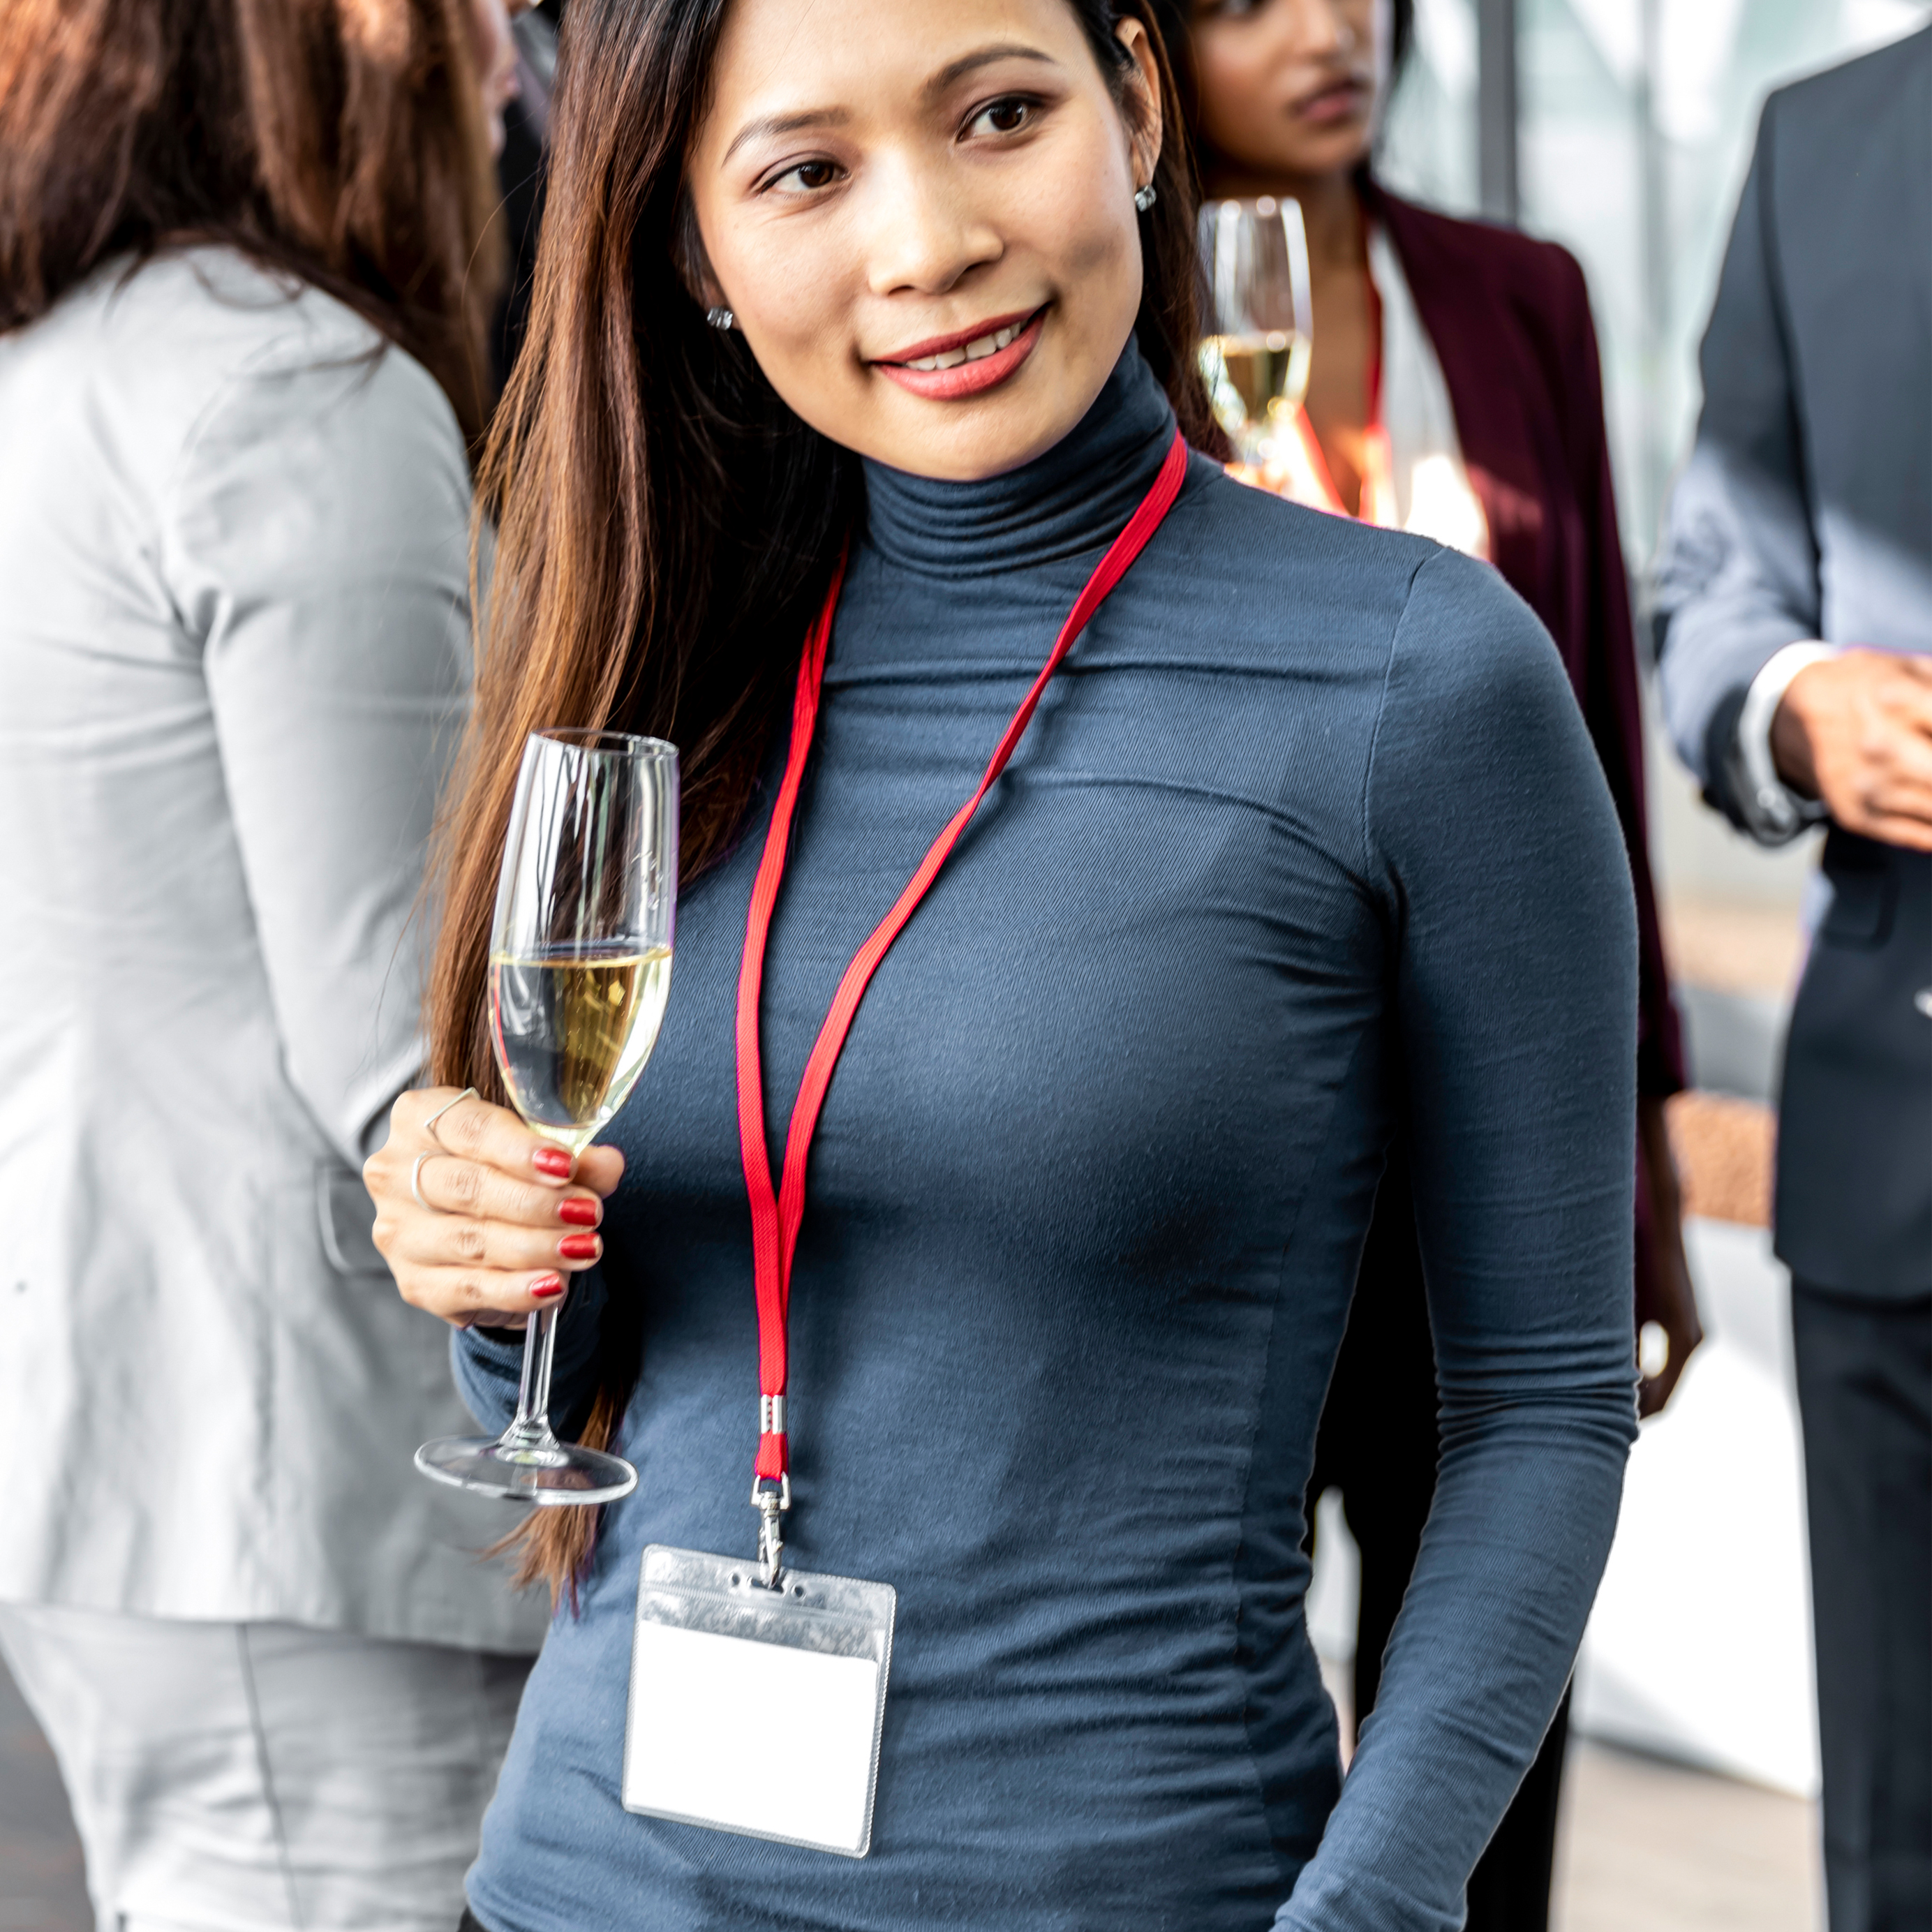 Badges, Buttons & Lanyards